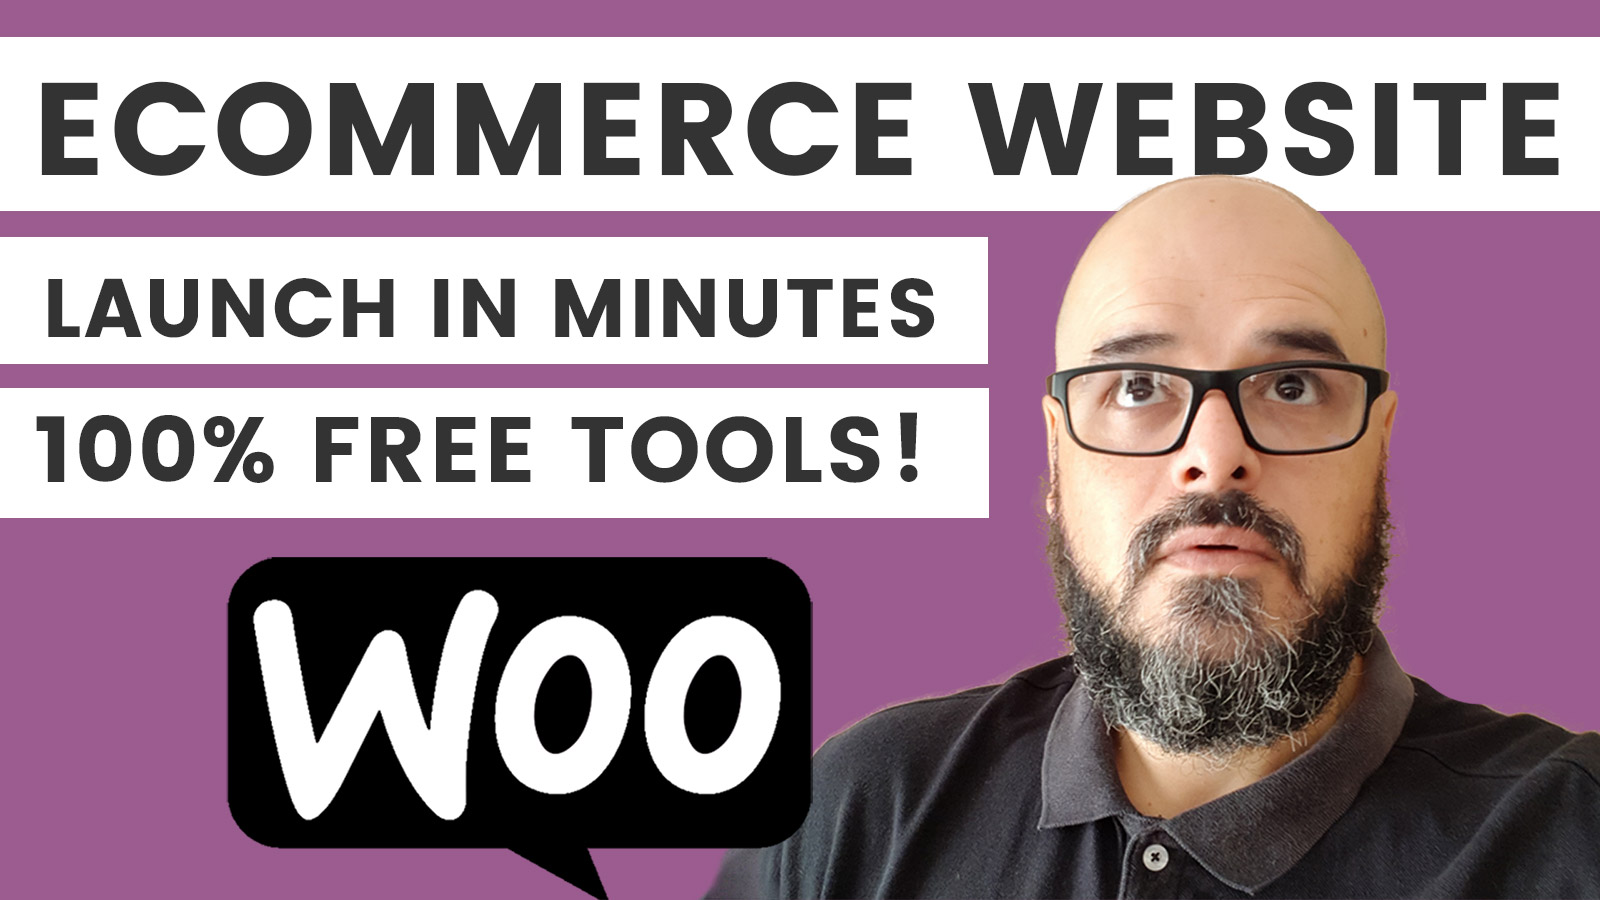 How to make a Free eCommerce Website with WordPress in Minutes